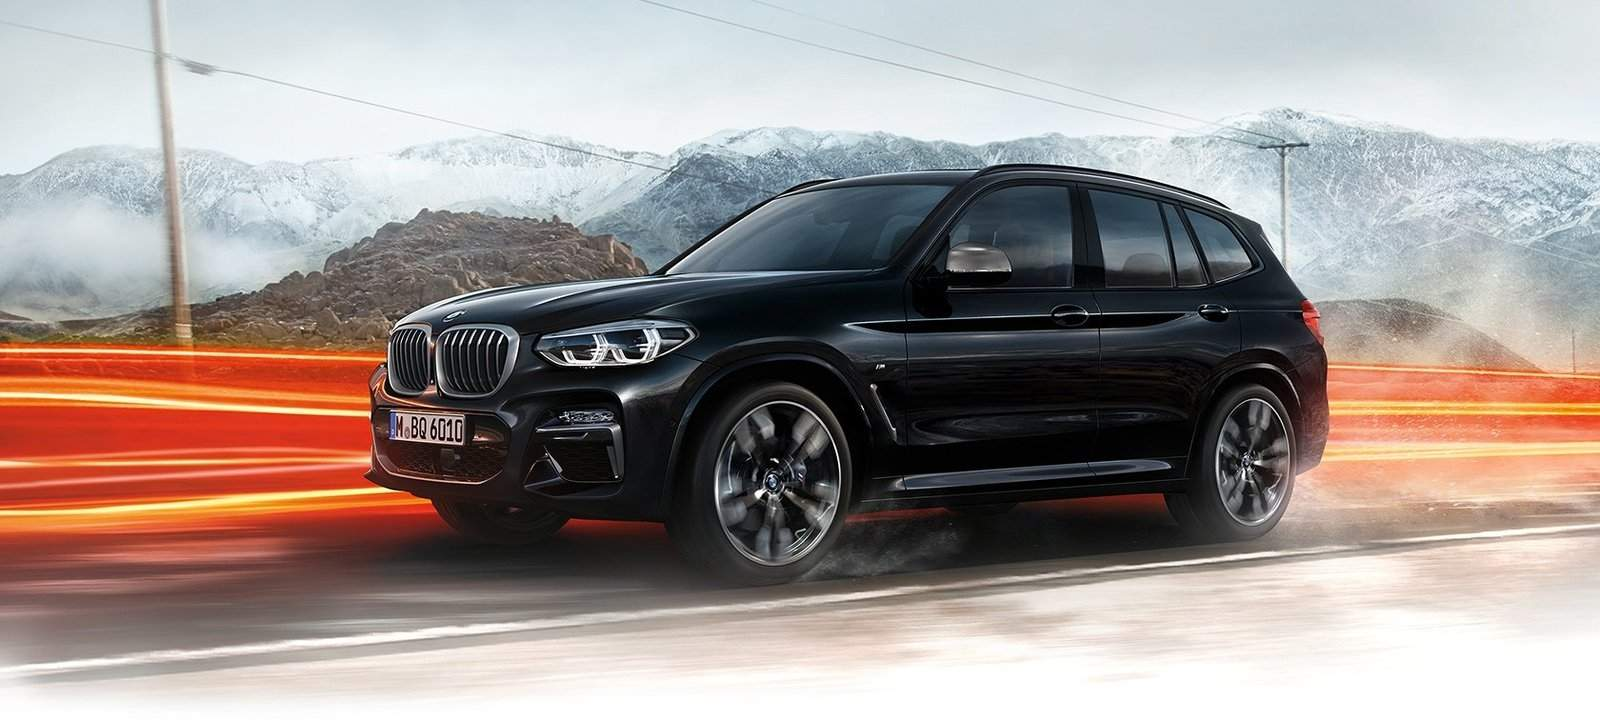 filtrado saluda al bmw x3 2018 en esta completa galer a. Black Bedroom Furniture Sets. Home Design Ideas